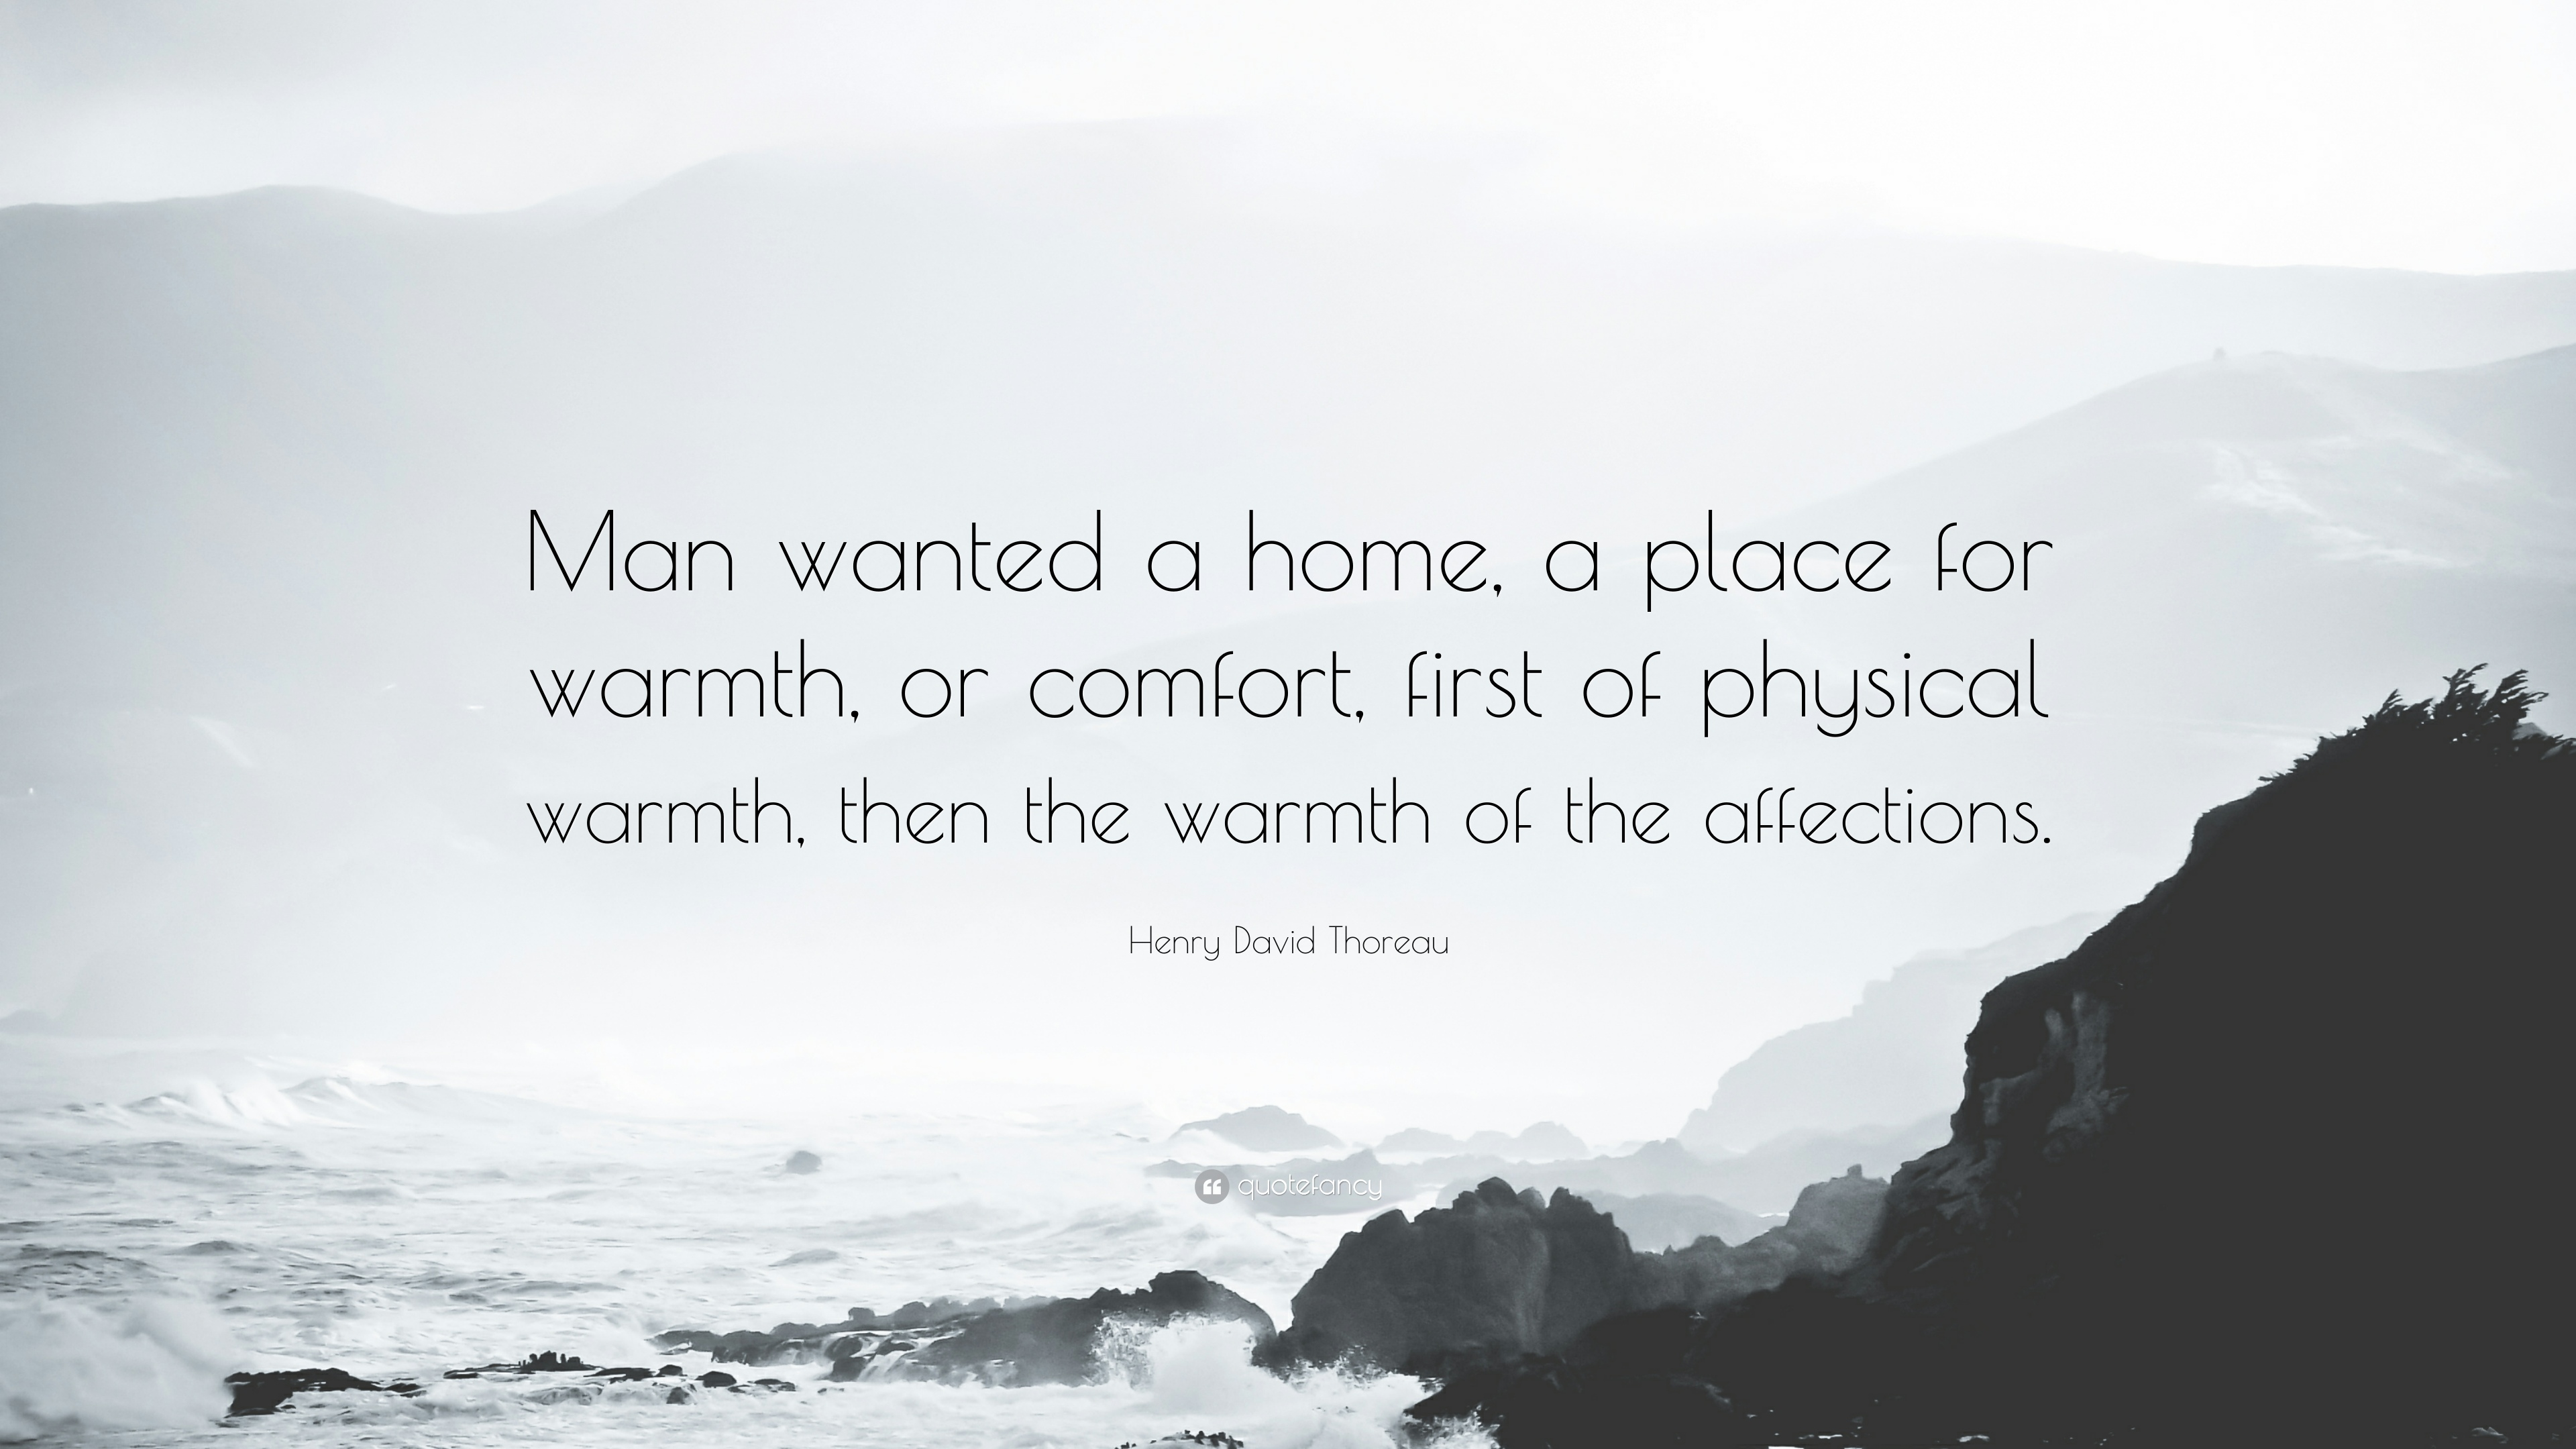 Henry David Thoreau Quote Man Wanted A Home A Place For Warmth Or Comfort First Of Physical Warmth Then The Warmth Of The Affections 10 Wallpapers Quotefancy